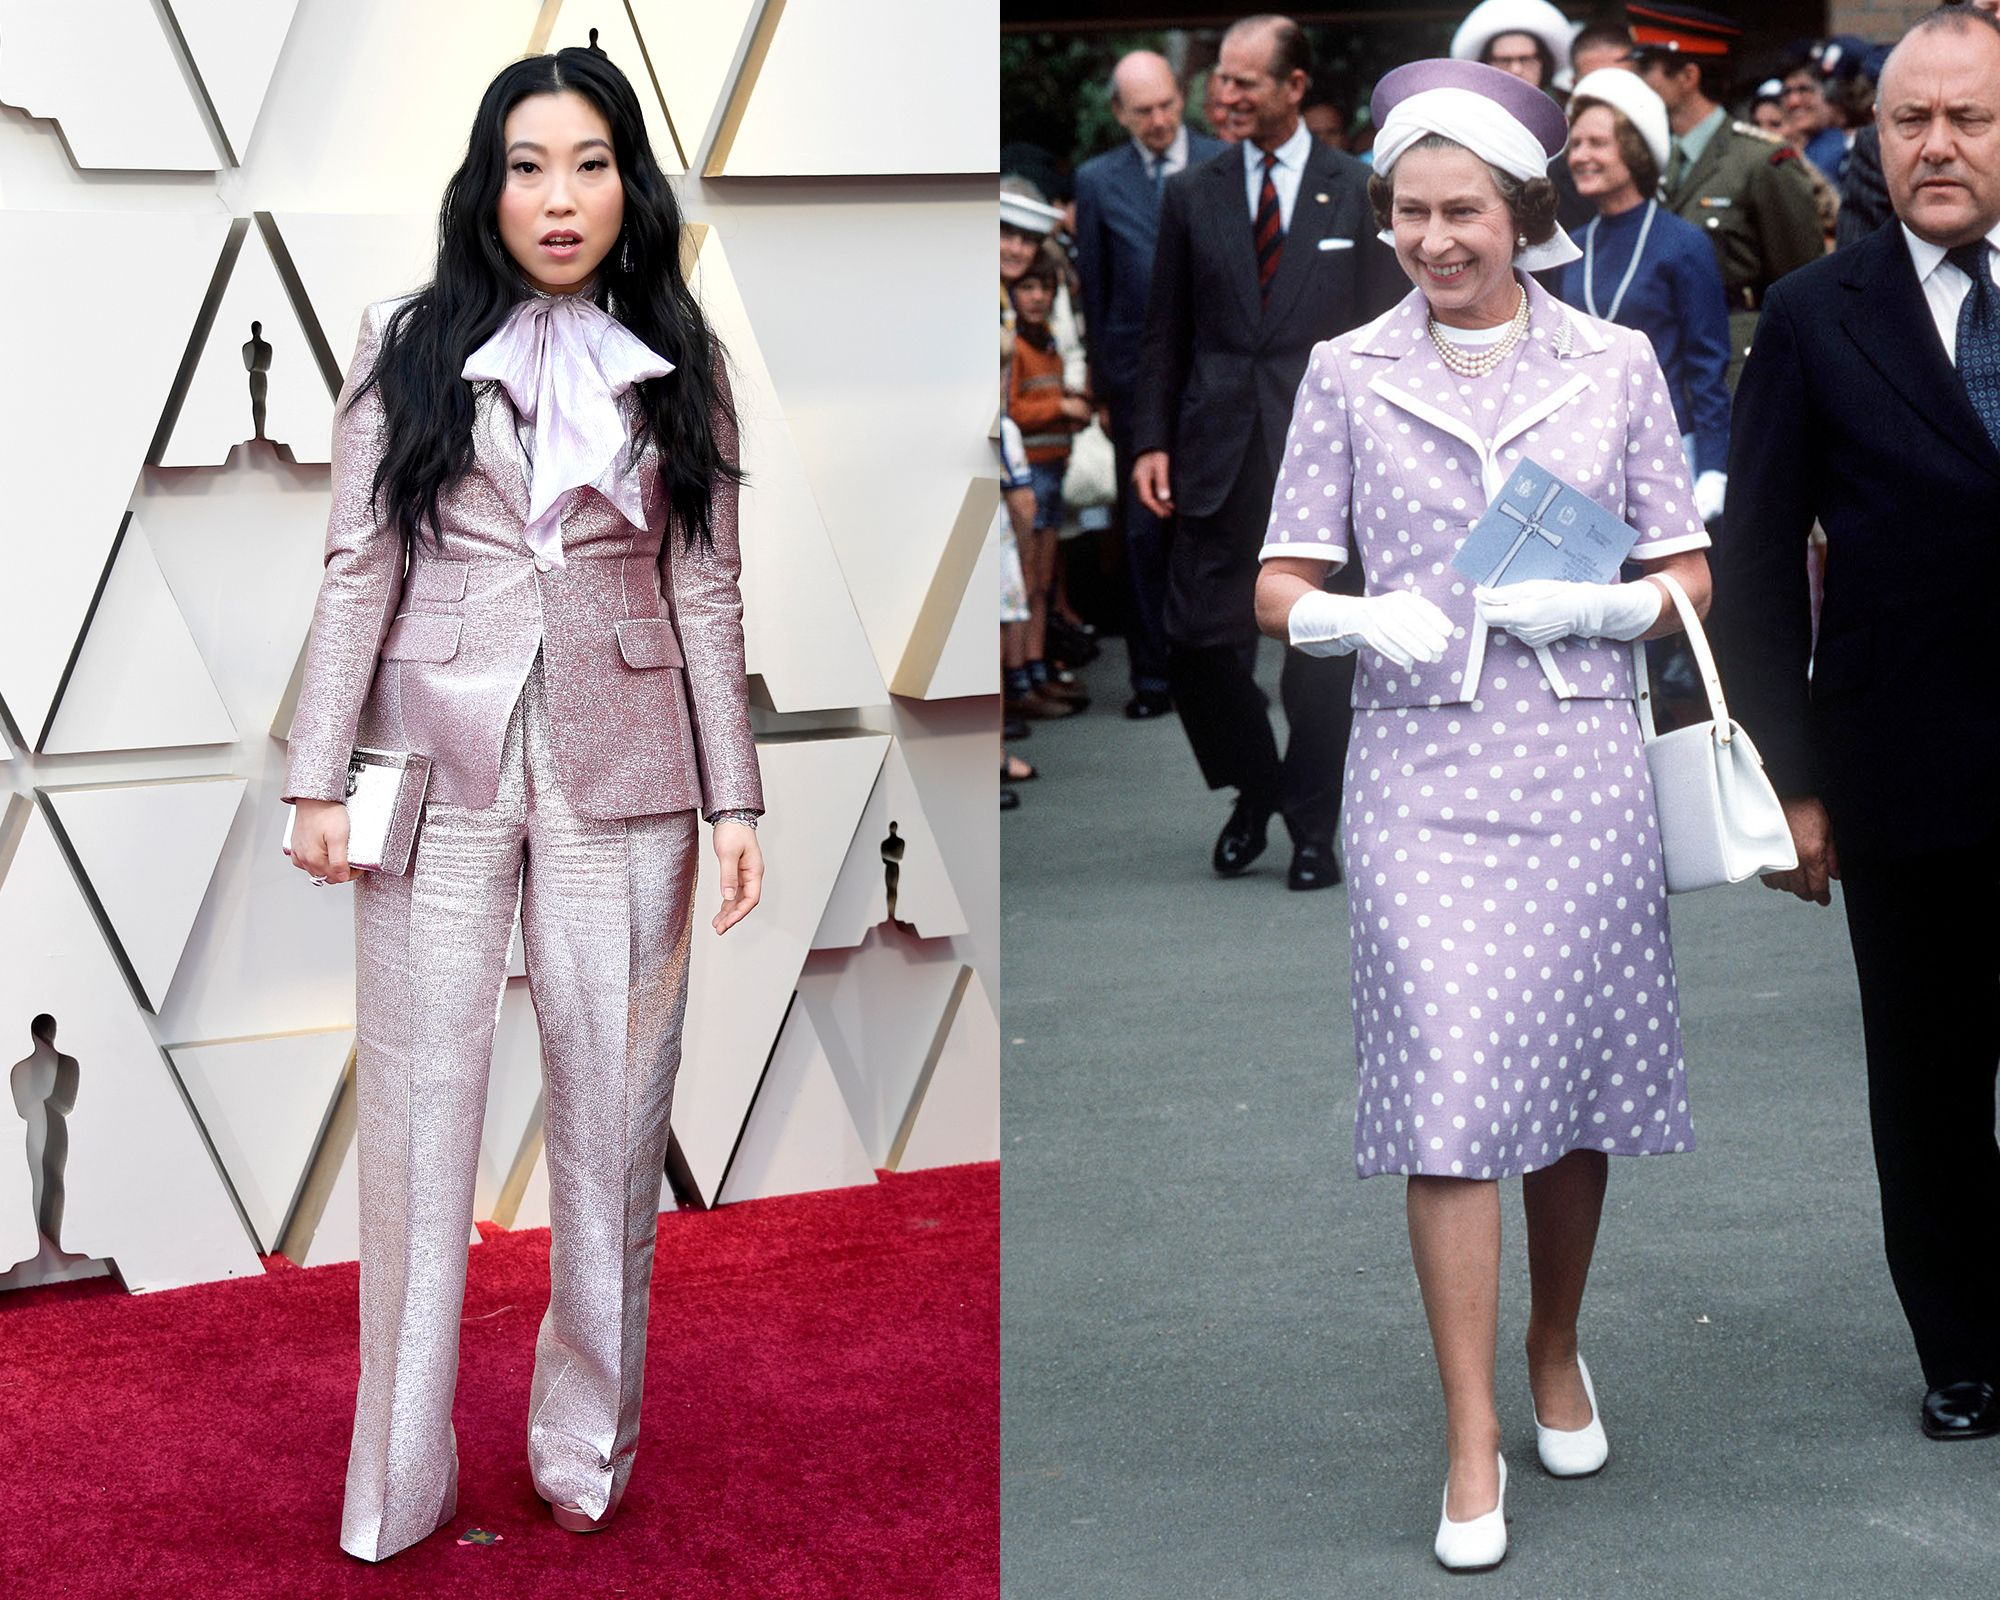 Awkwafina vs. the Queen